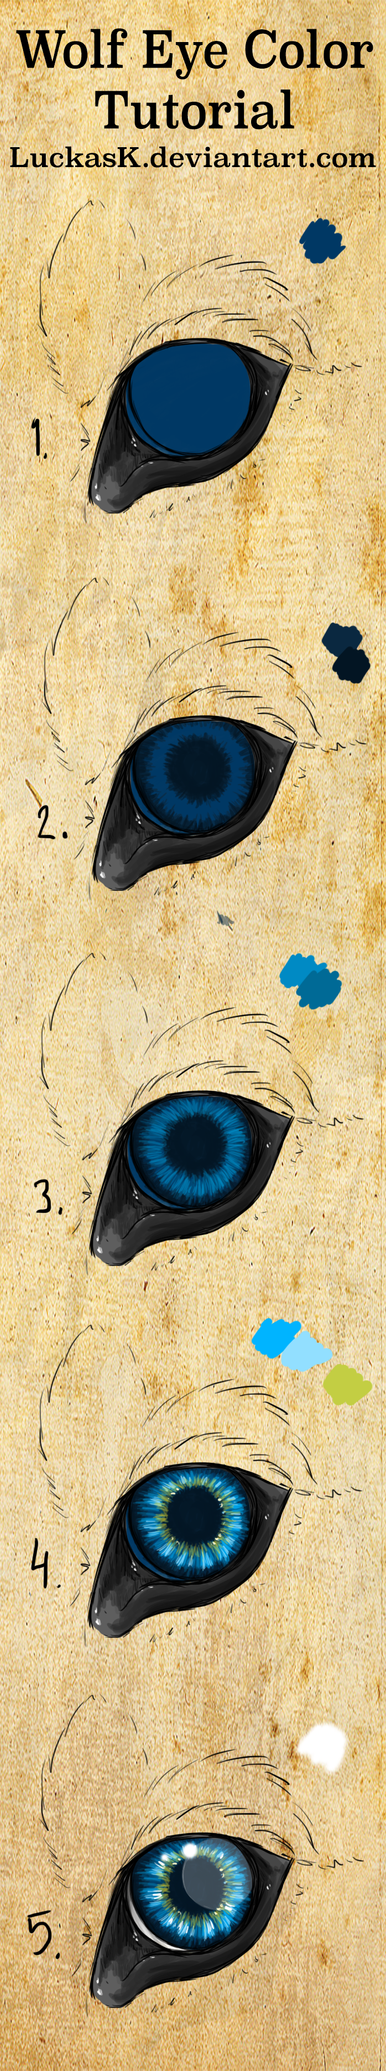 Wolf eye coloring tutorial (without text) by CasArtss